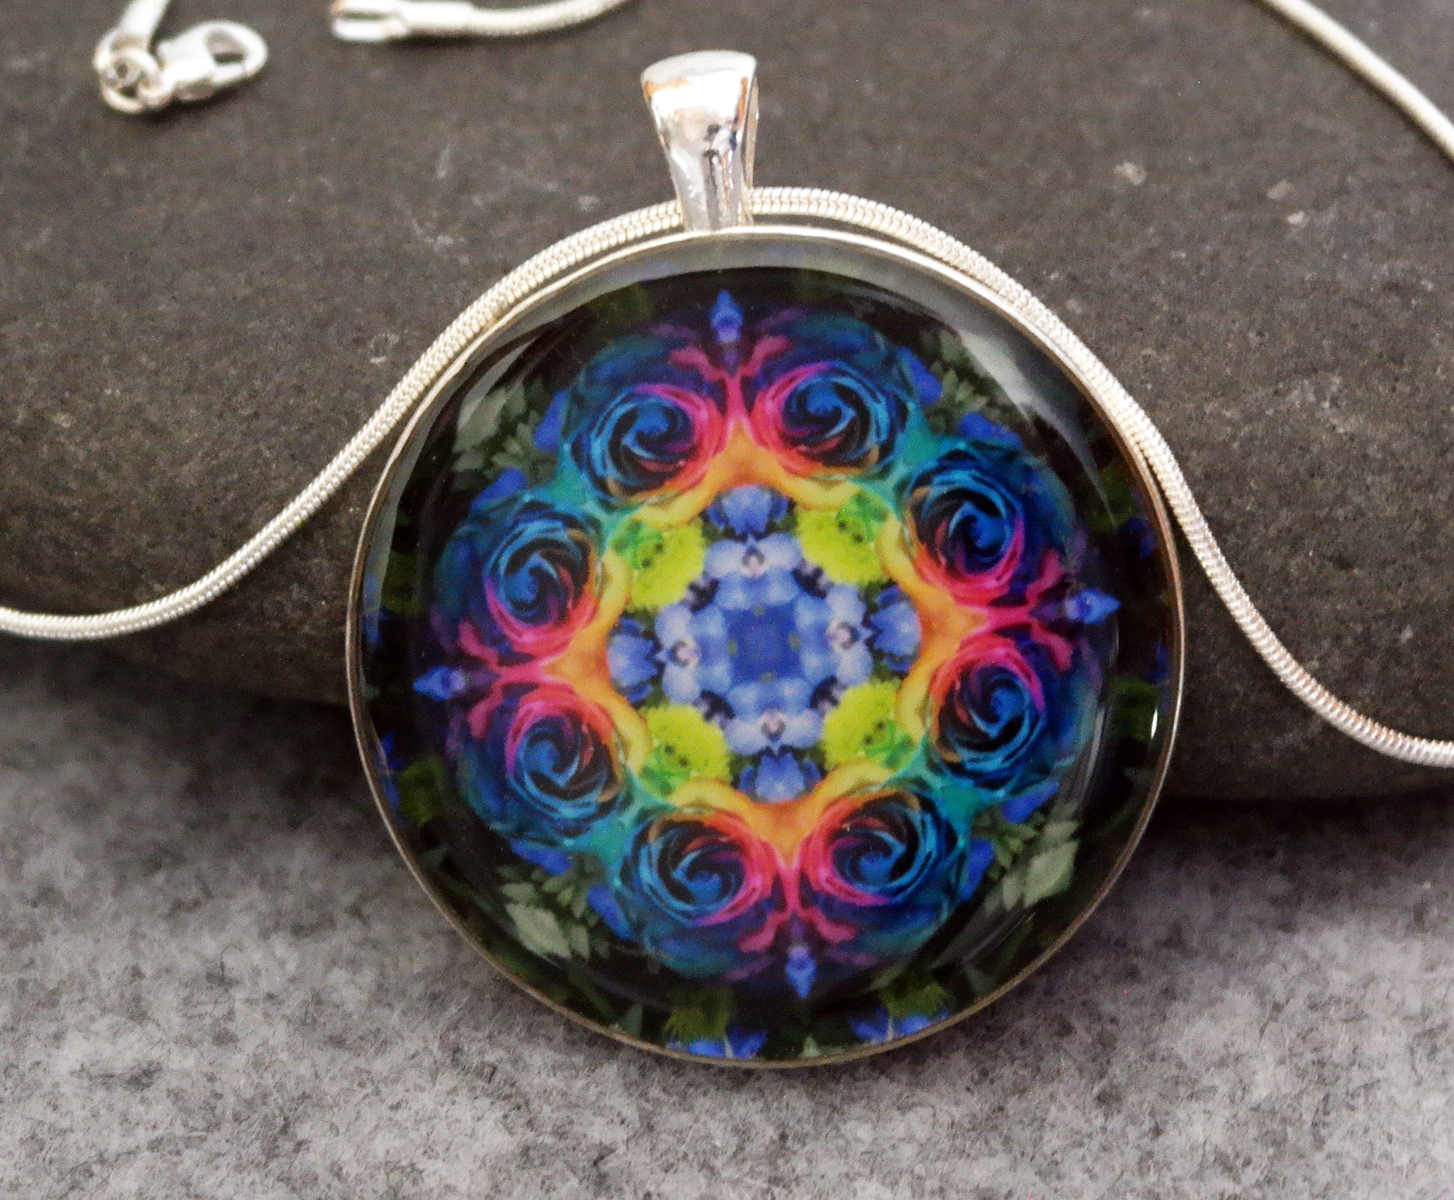 Rainbow Rose Mandala Pendant Amulet Necklace Boho Chic Chakra New Age Sacred Geometry Kaleidoscope Unique Gift For Her The Spectrum Of An Open Heart